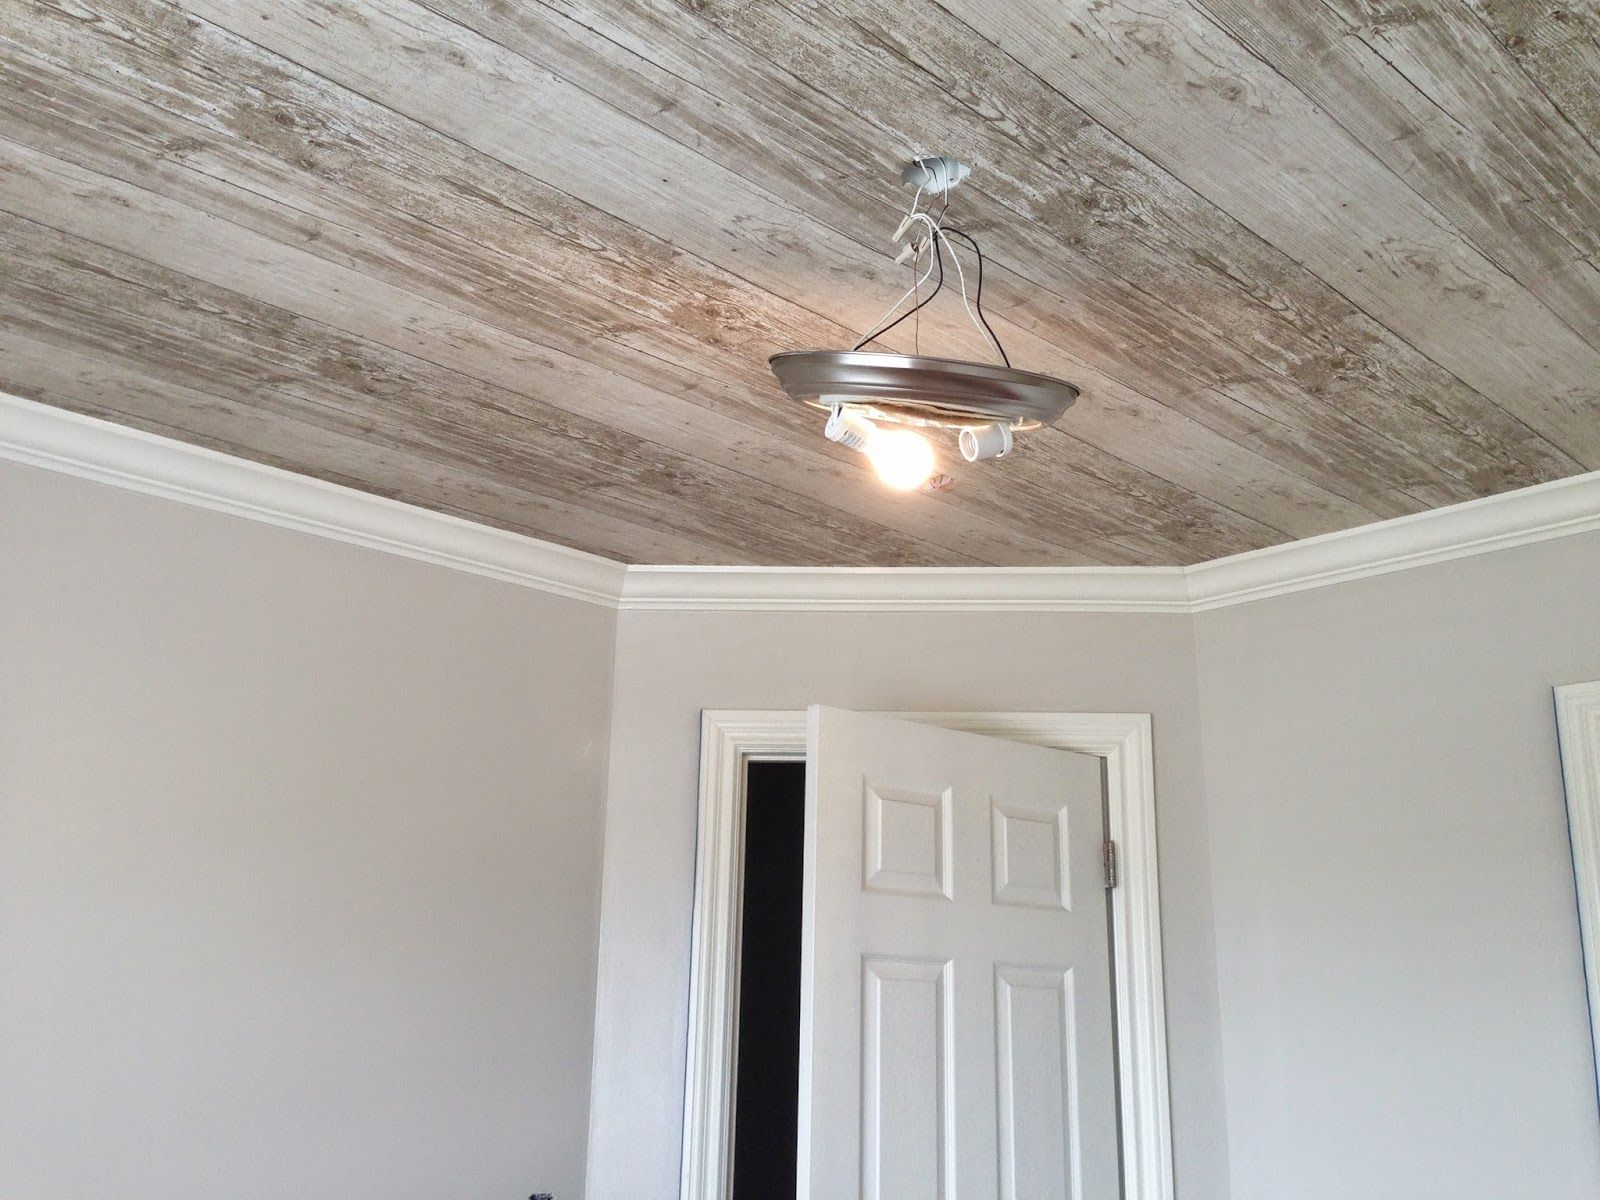 Painted Wood Ceilings Neutral Masculine Nursery Week 2 Wallpapering The Ceiling